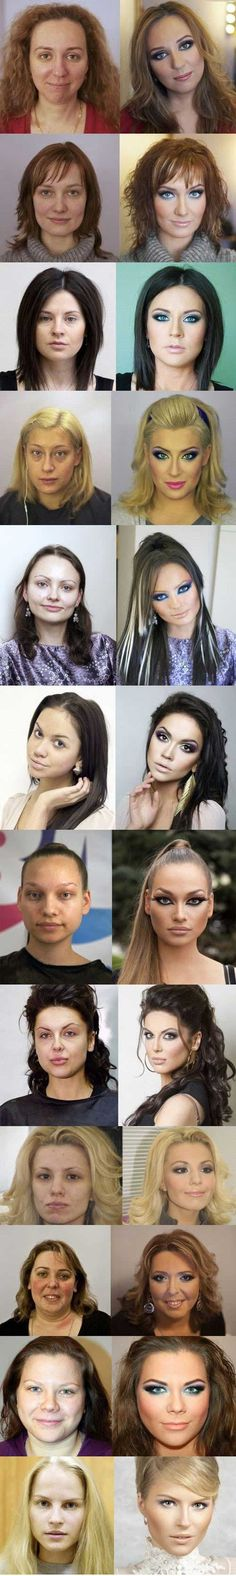 Amazing before and after makeup pictures